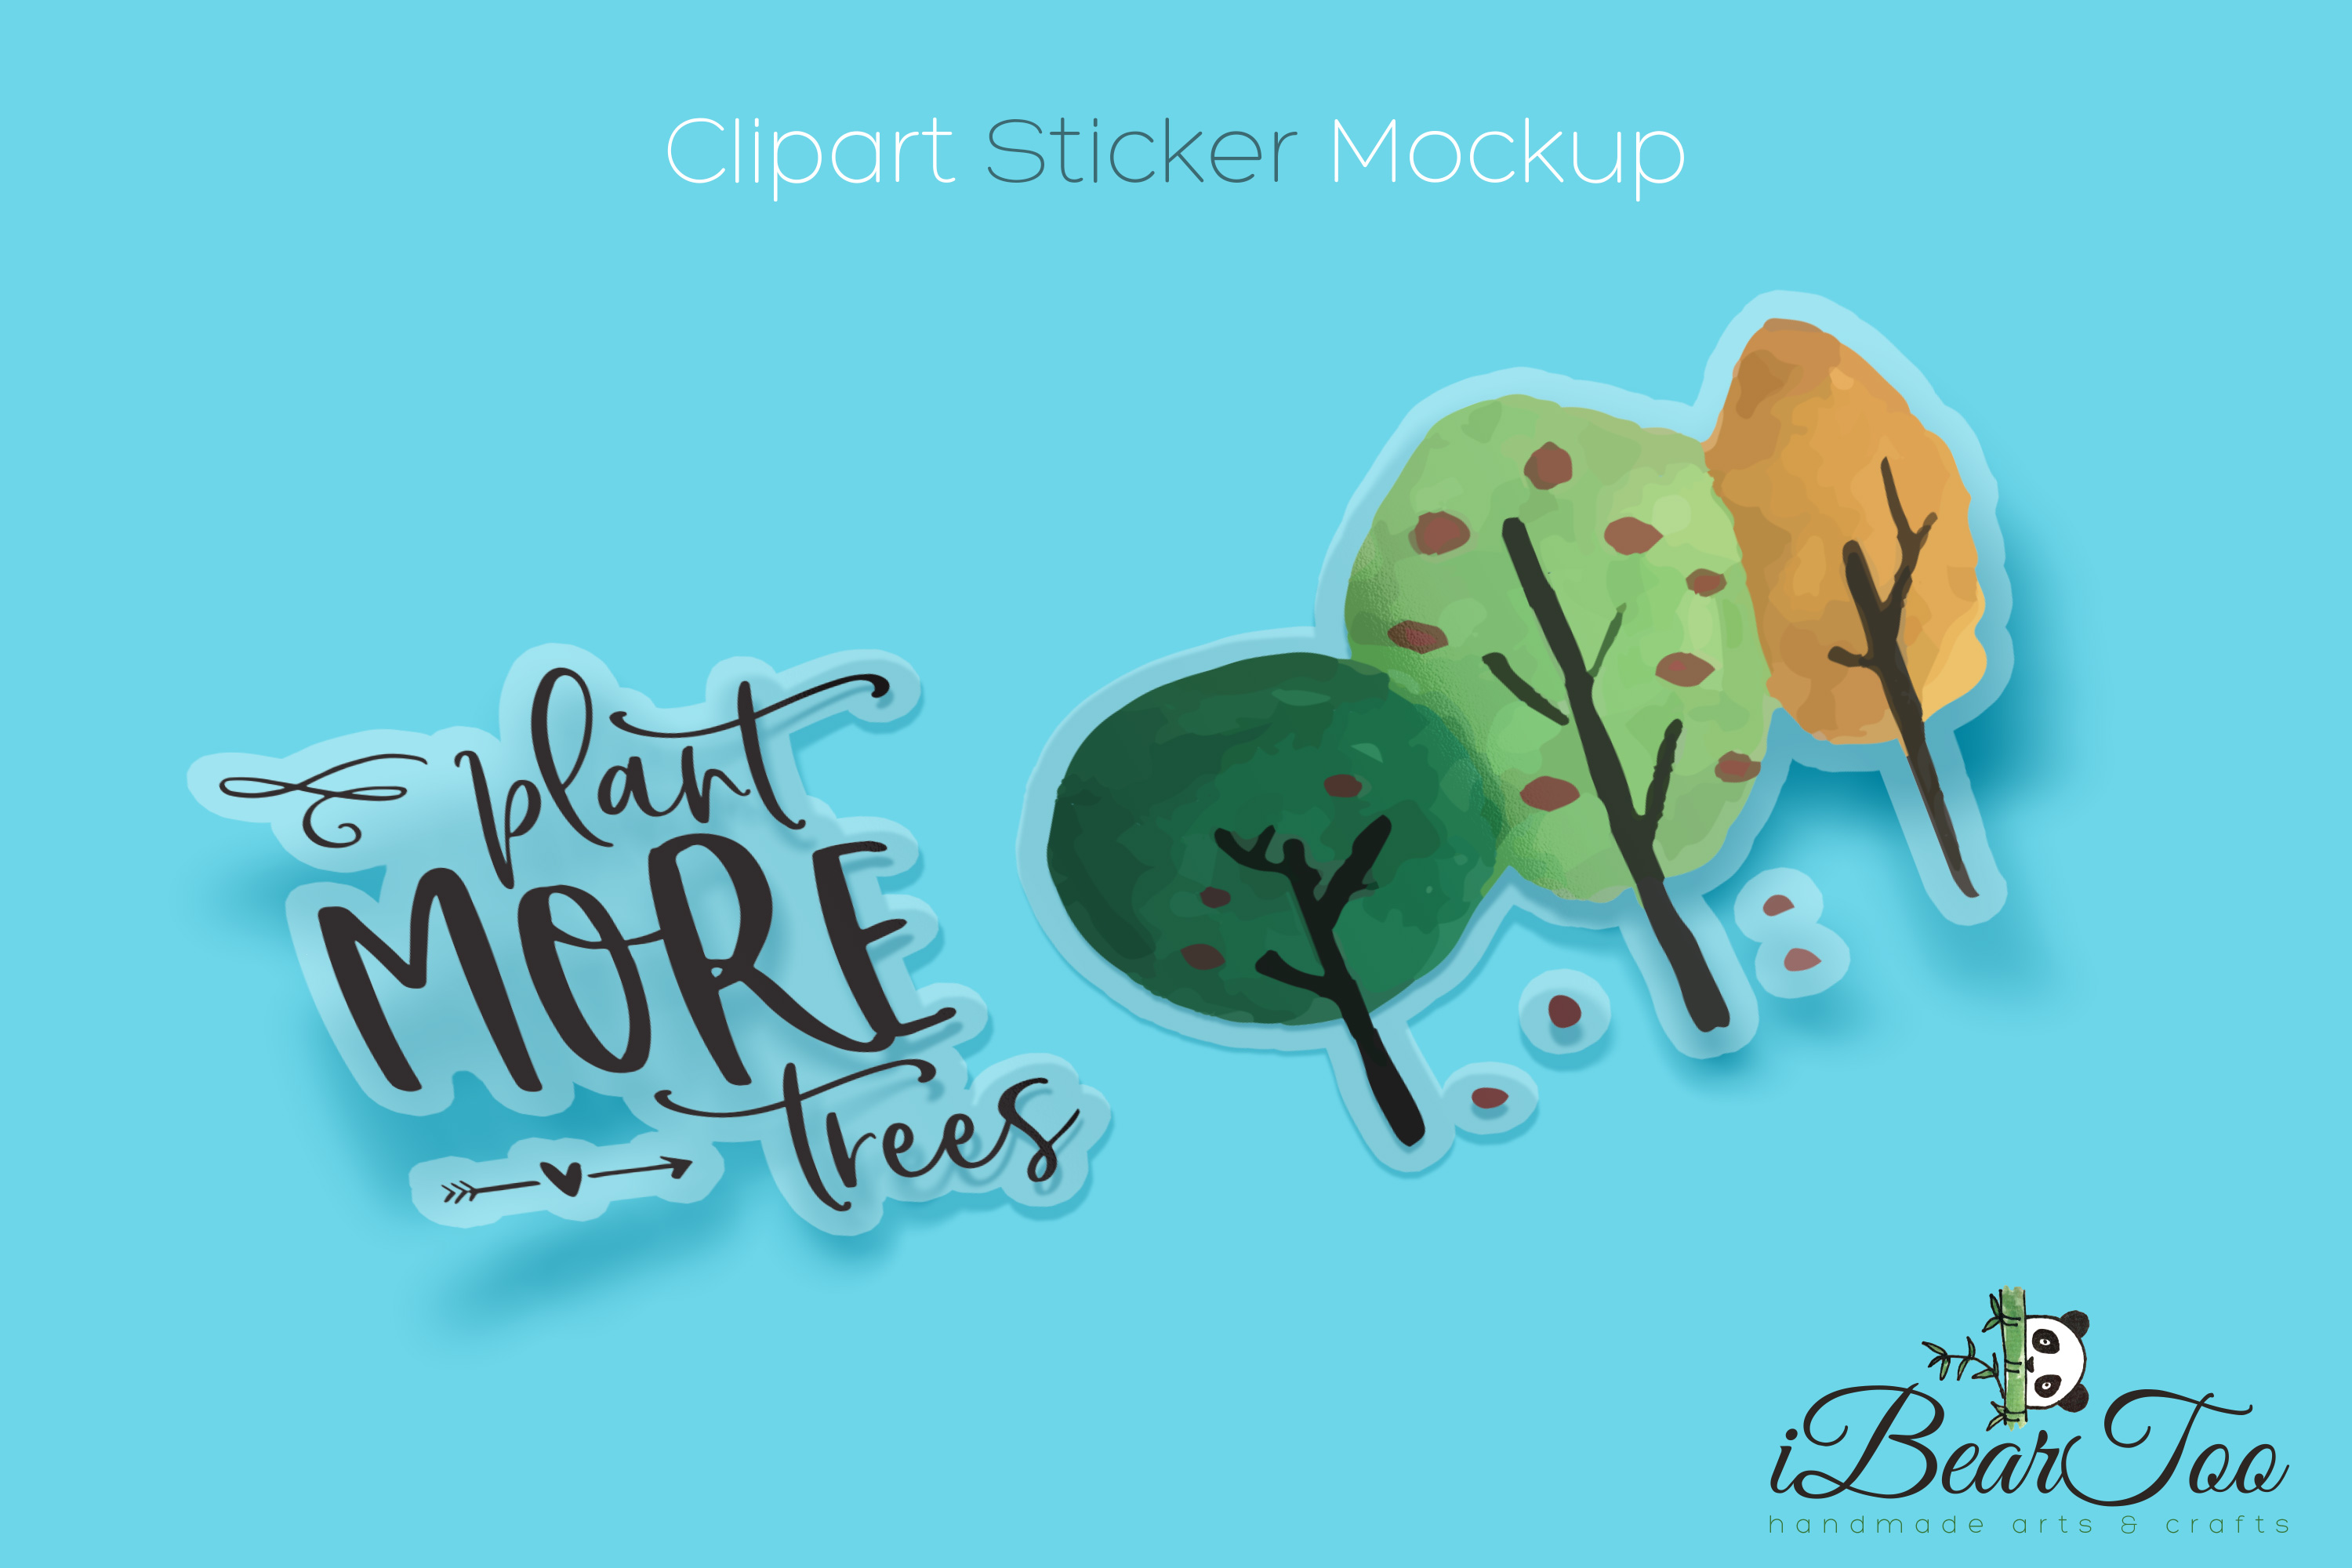 Plant More Trees SVG Clipart Watercolor, Vector Sketch example image 8